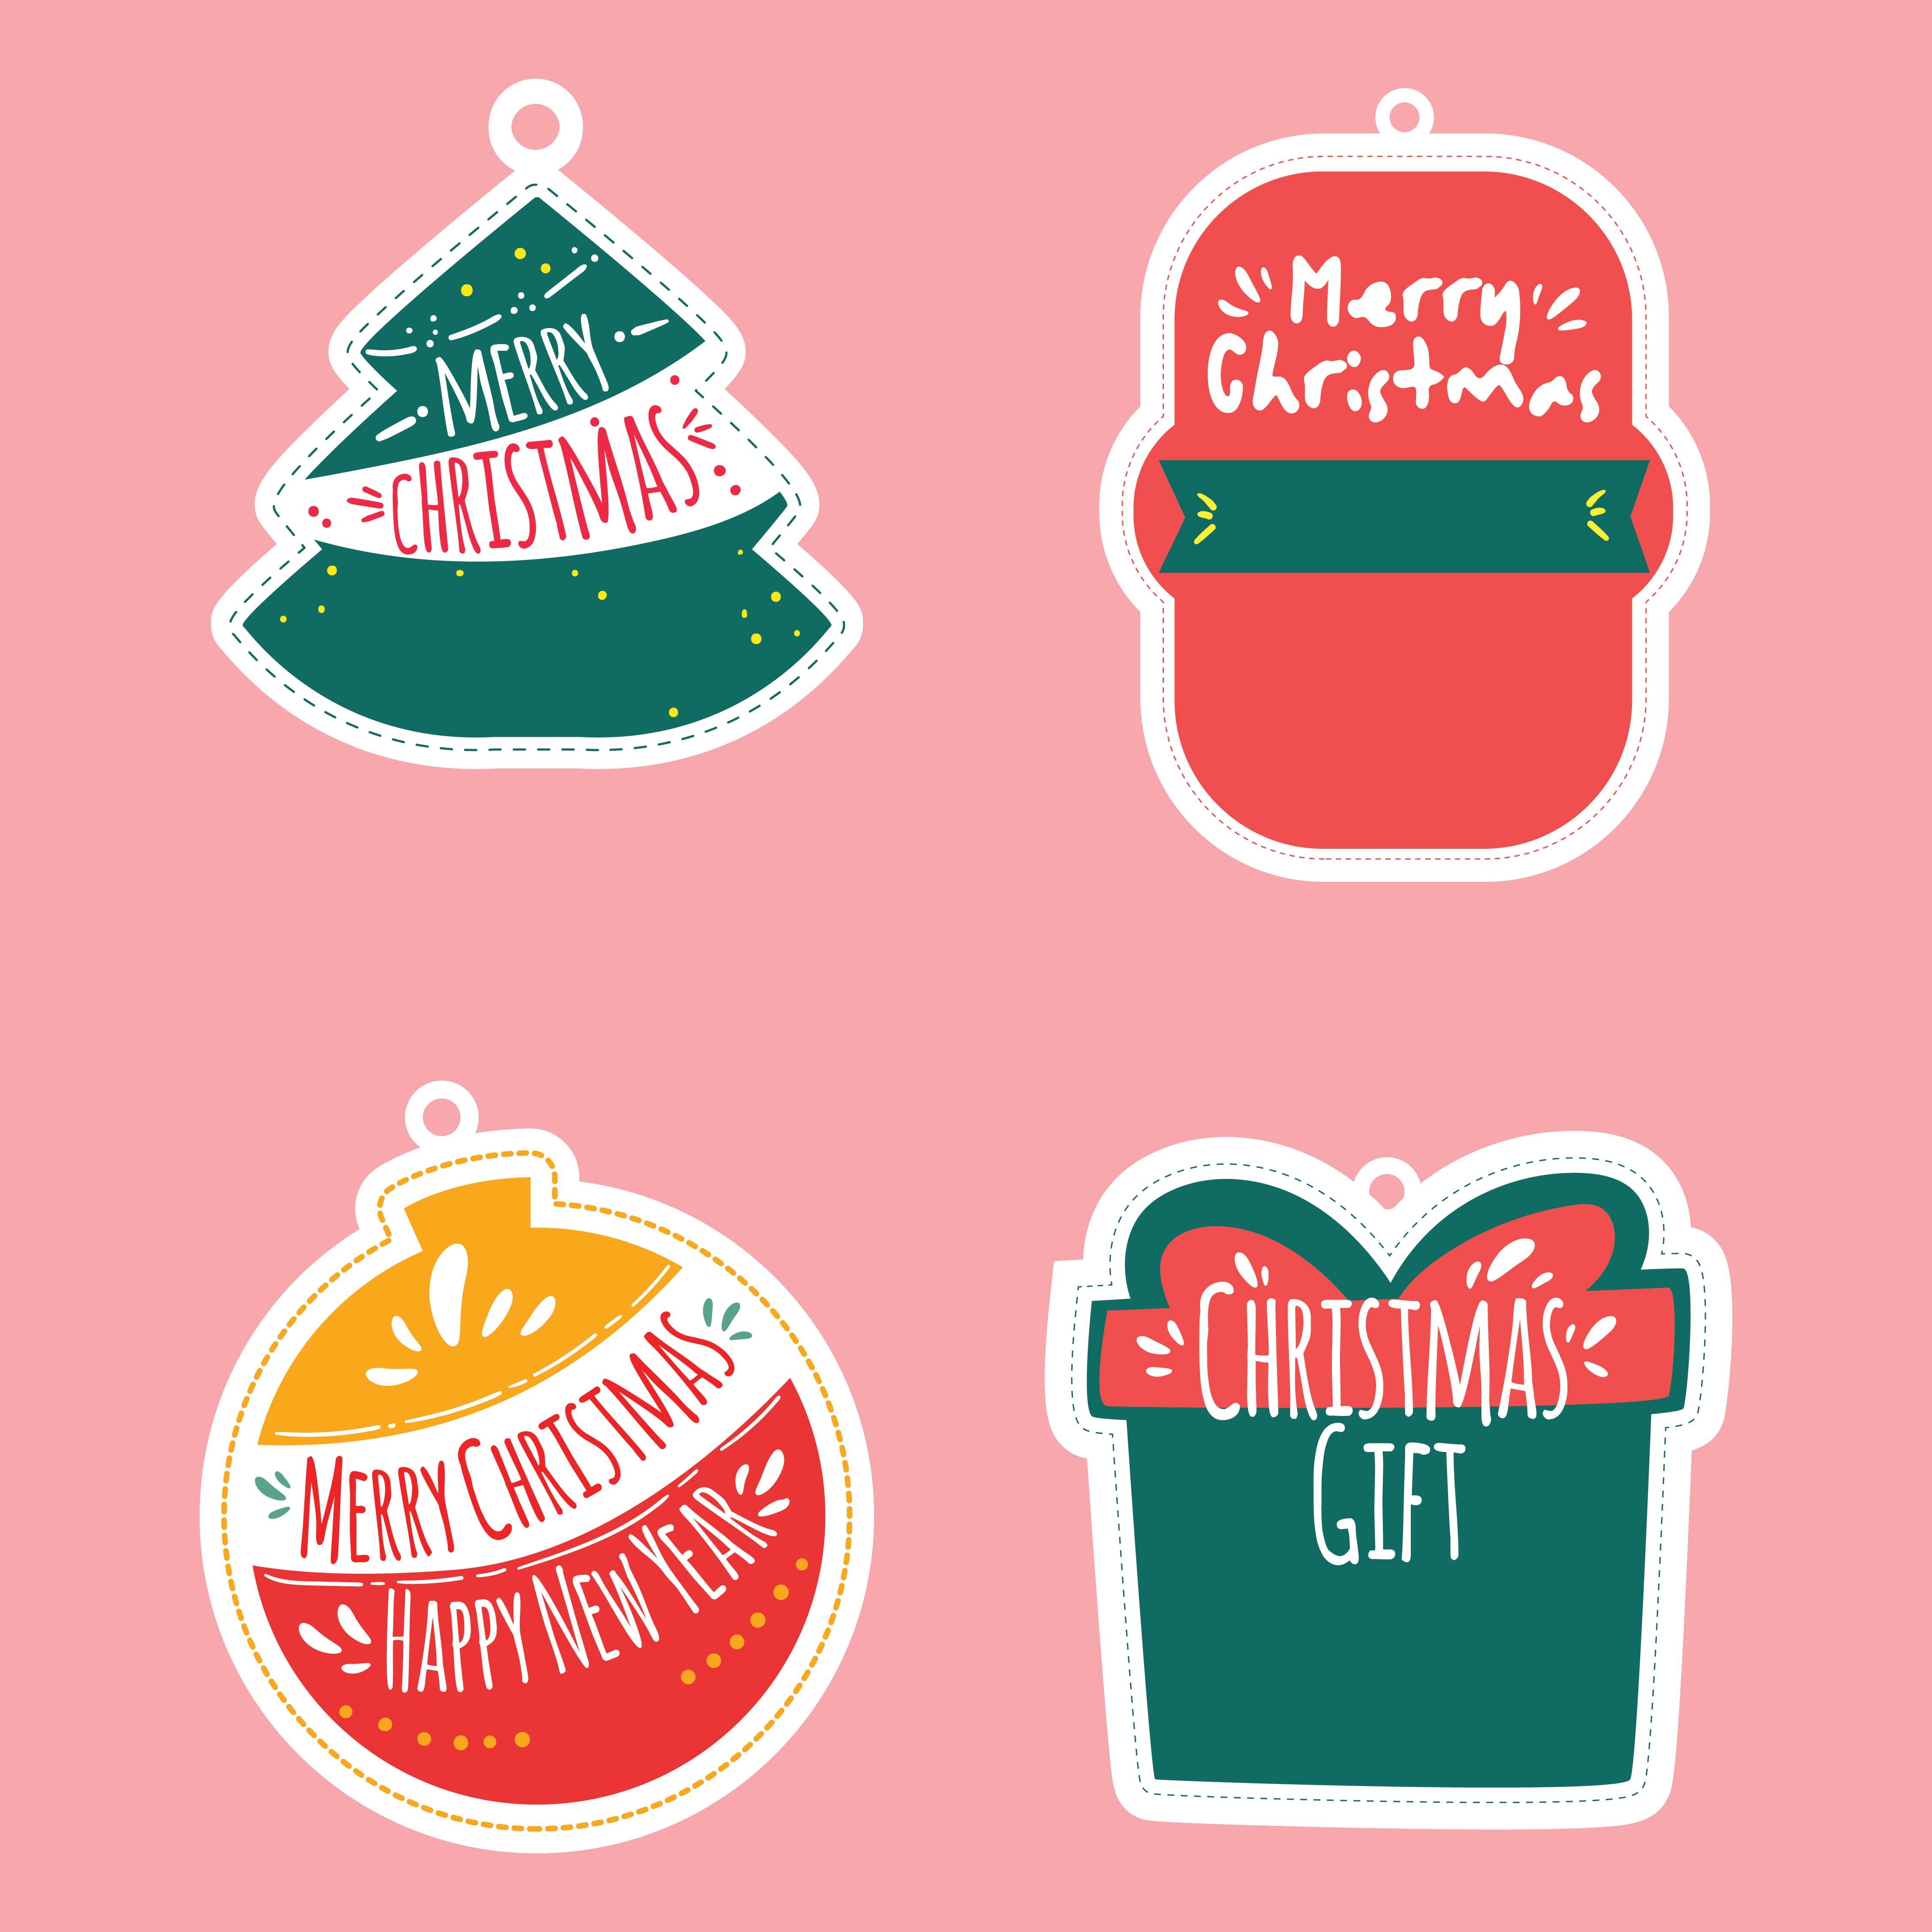 4 Images of Free Printable Christmas Stickers